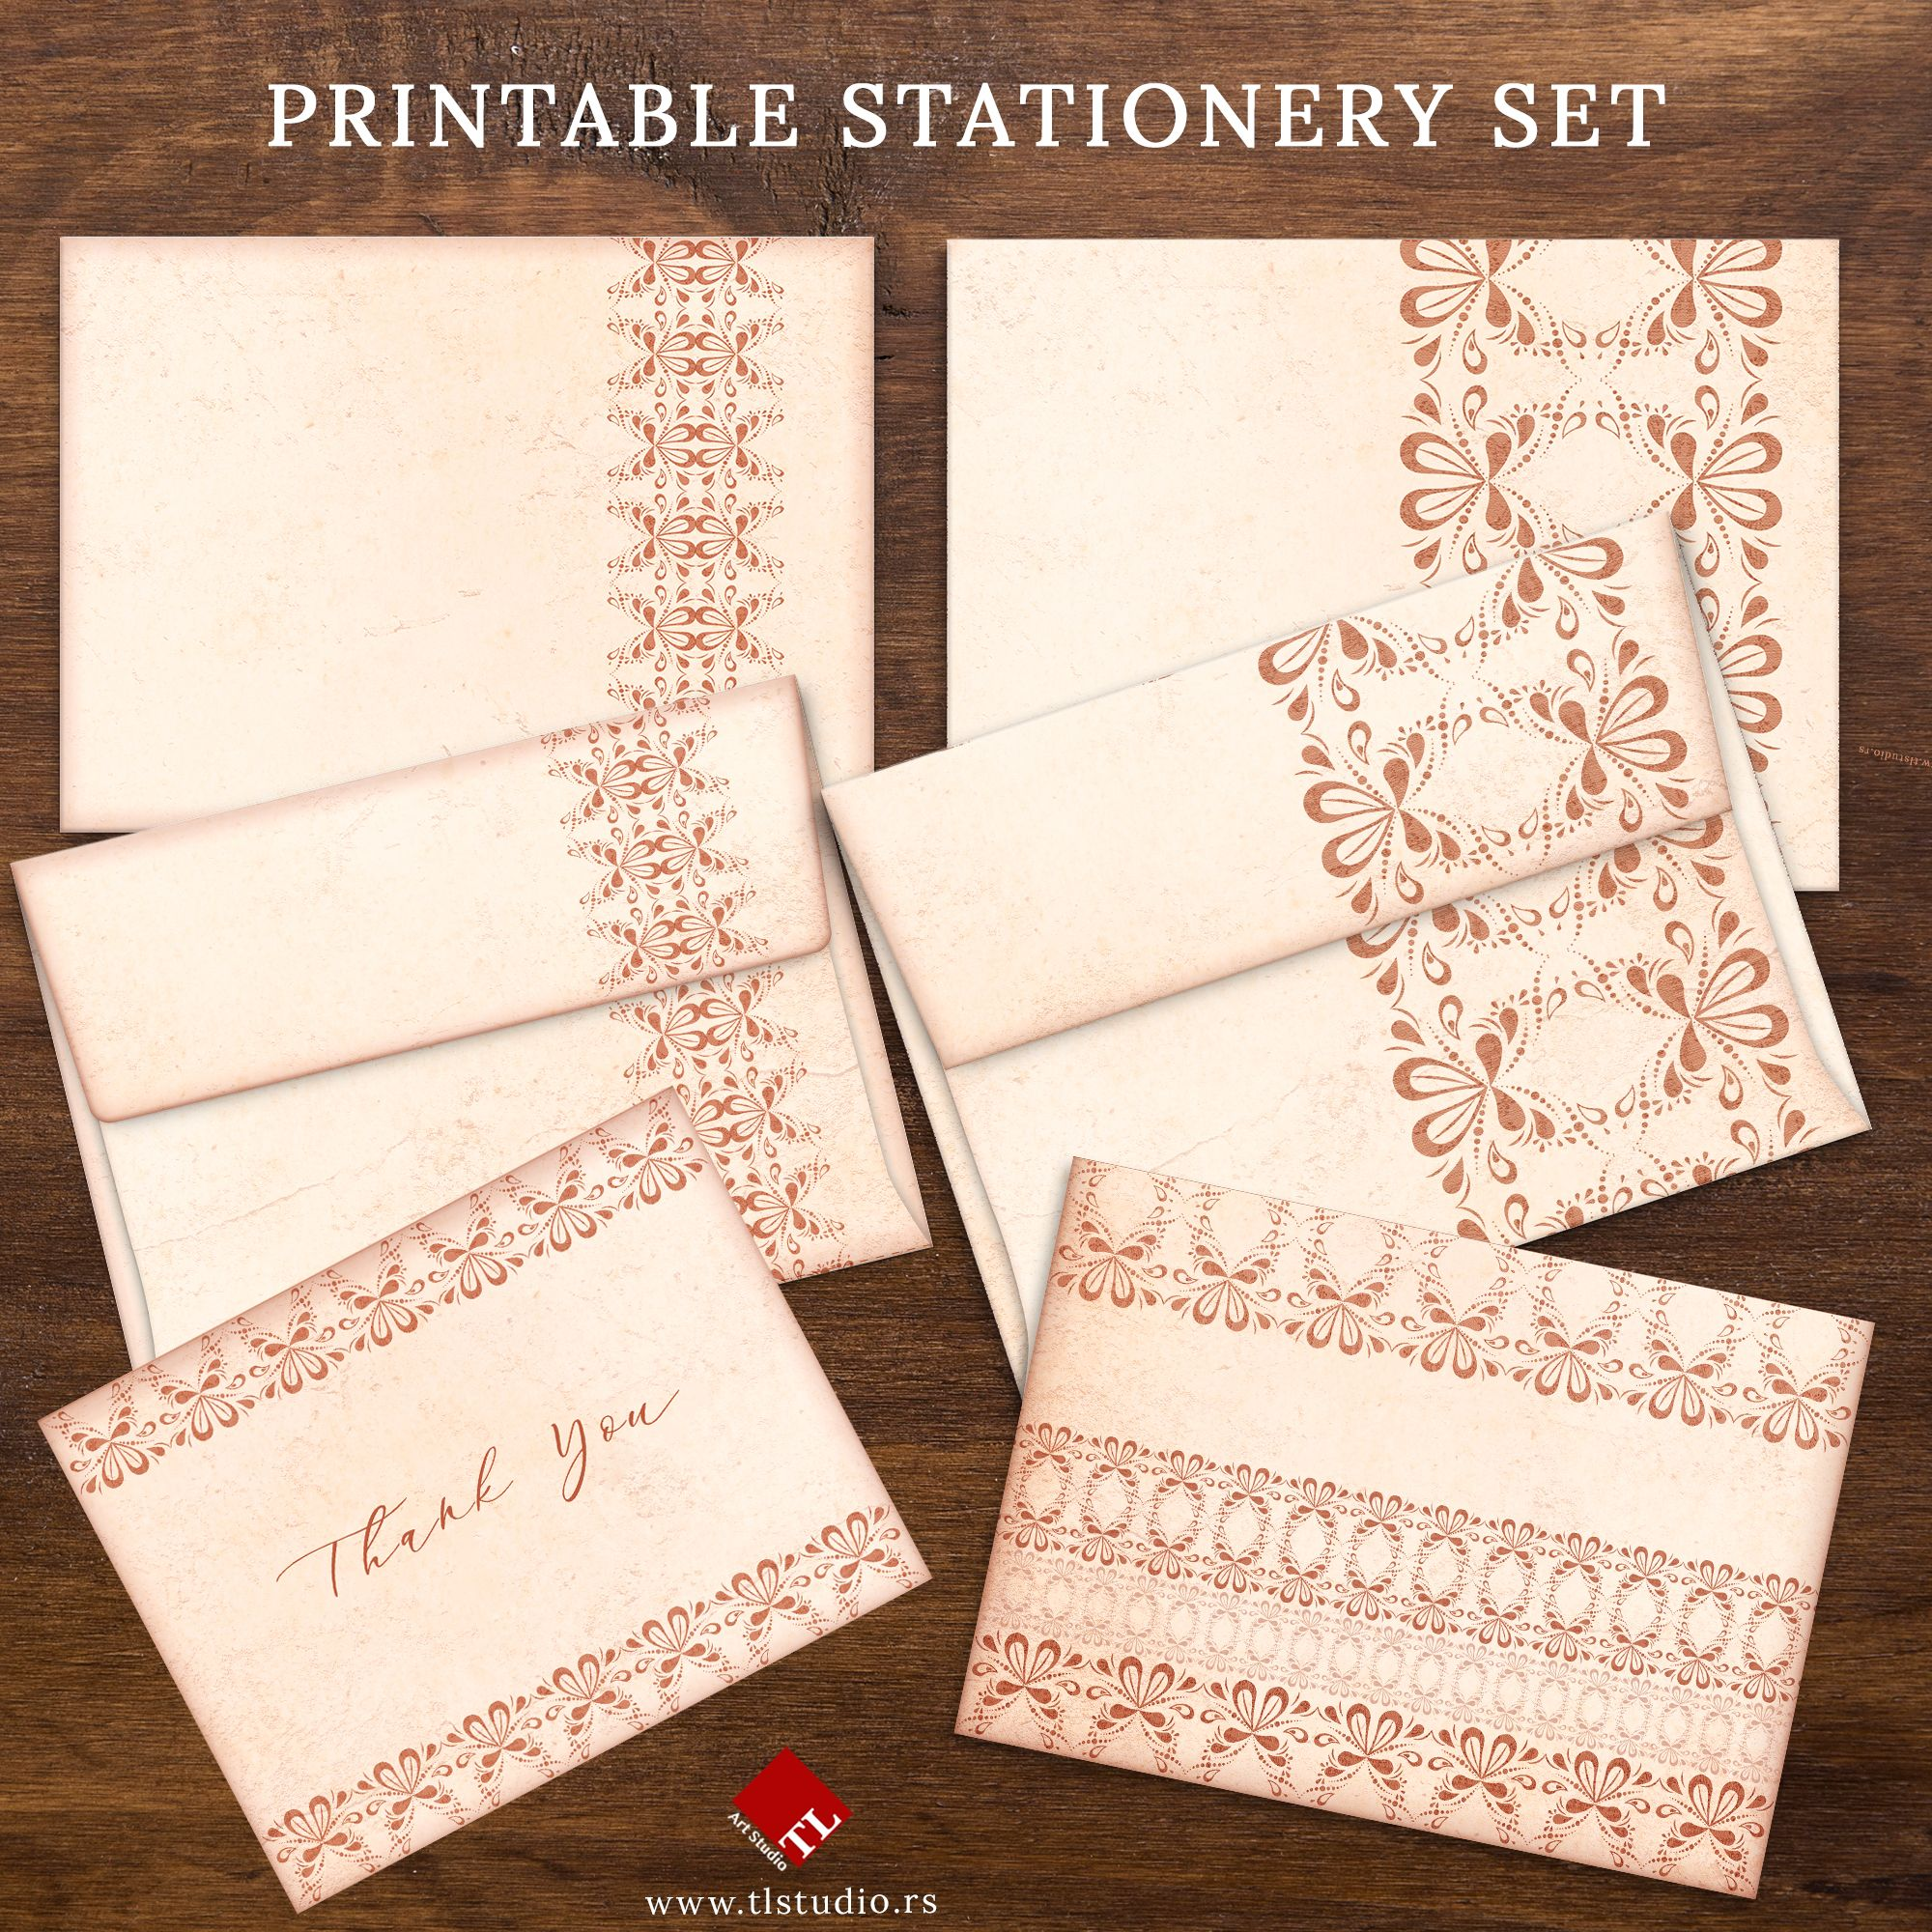 Printable Stationery Set Vintage Style Writing Papers And Note Cards Printable Beige Lace Envelope Templates Printable Stationery Stationery Set Lace Stationery